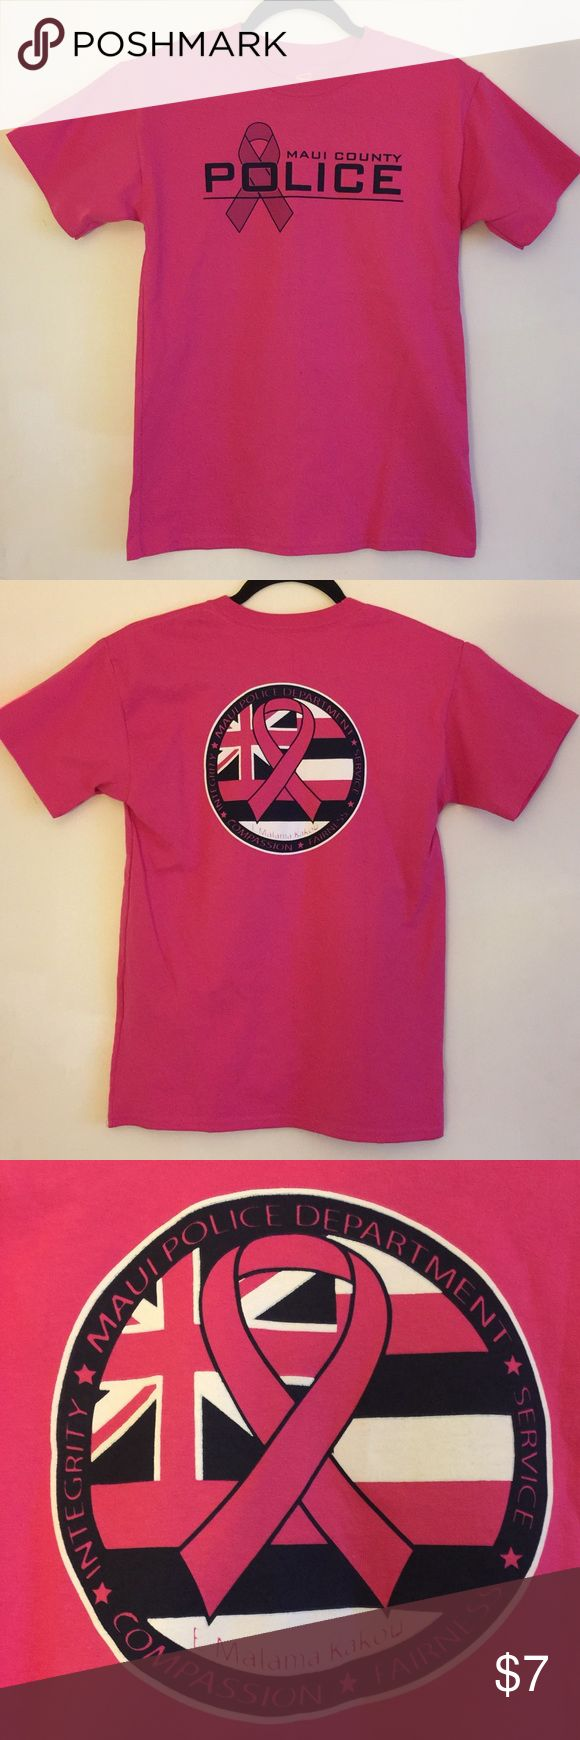 Maui County Police Tee New never worn Maui County Police Breast Cancer Awareness Commemoration Tee. This is a youth large made of 100% pre shrunk cotton. Small mark on the front (see pic 4). Hanes Shirts & Tops Tees - Short Sleeve